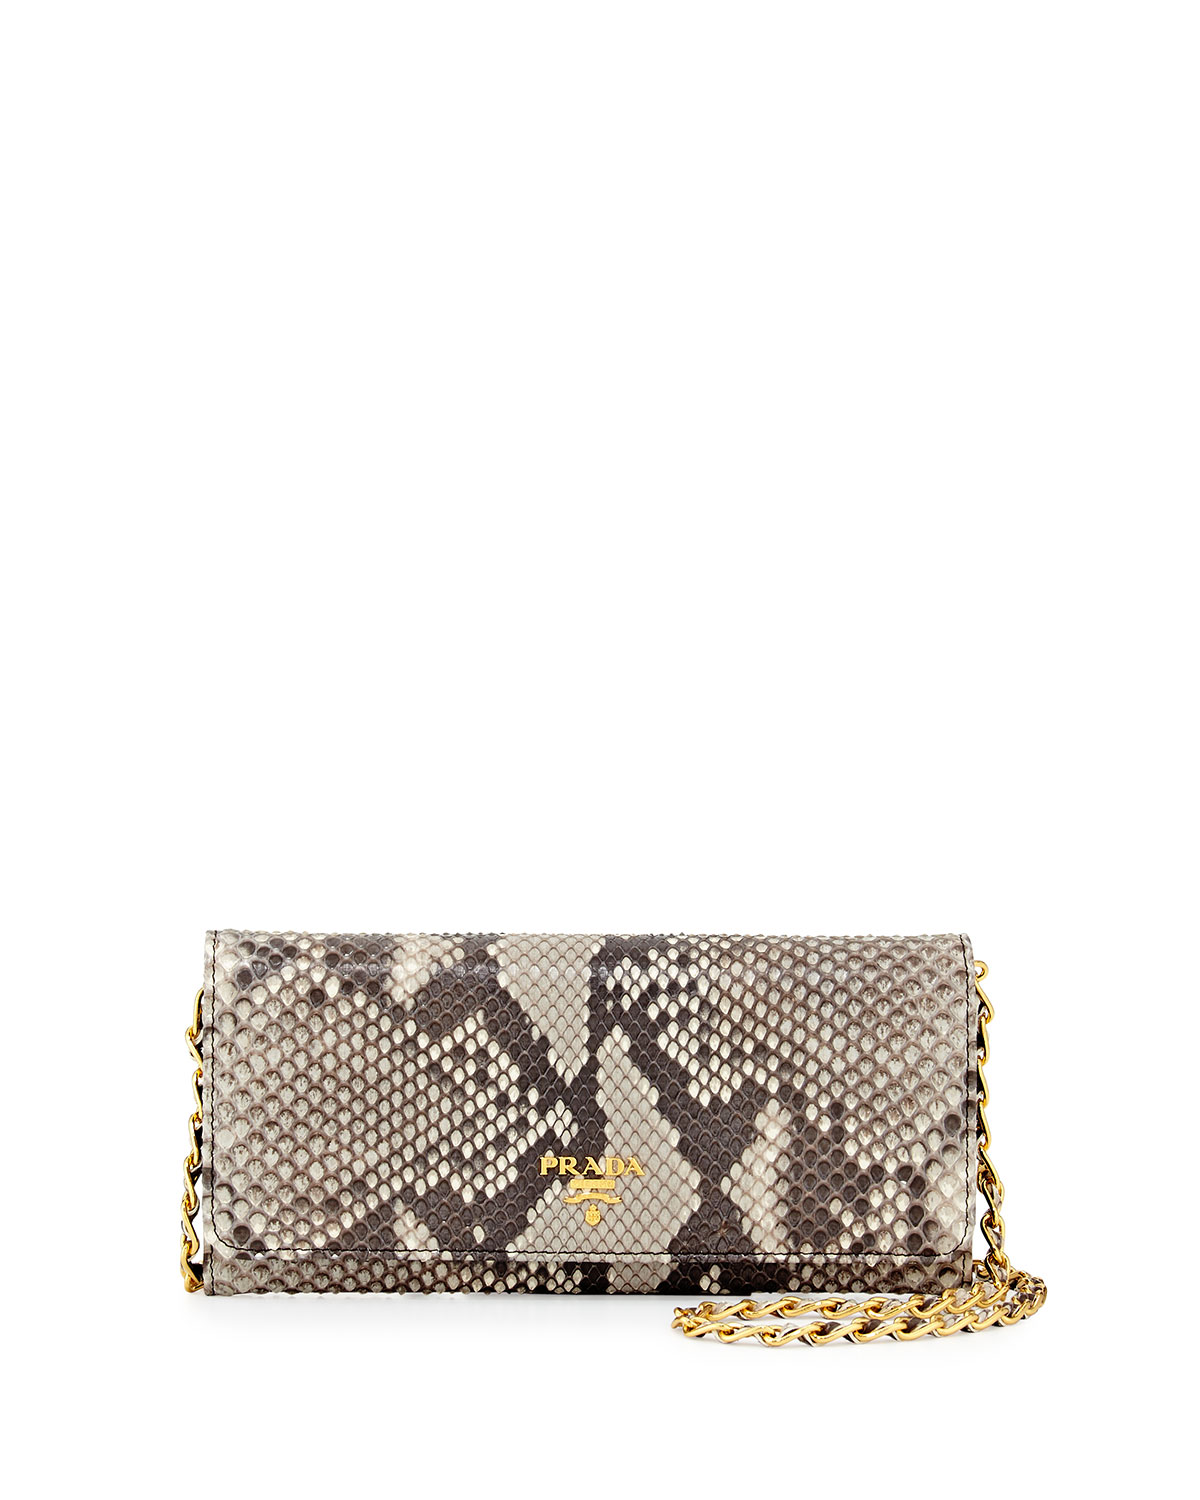 3af3a833b785 Prada Python Wallet on a Chain, Natural (Roccia) | Neiman Marcus